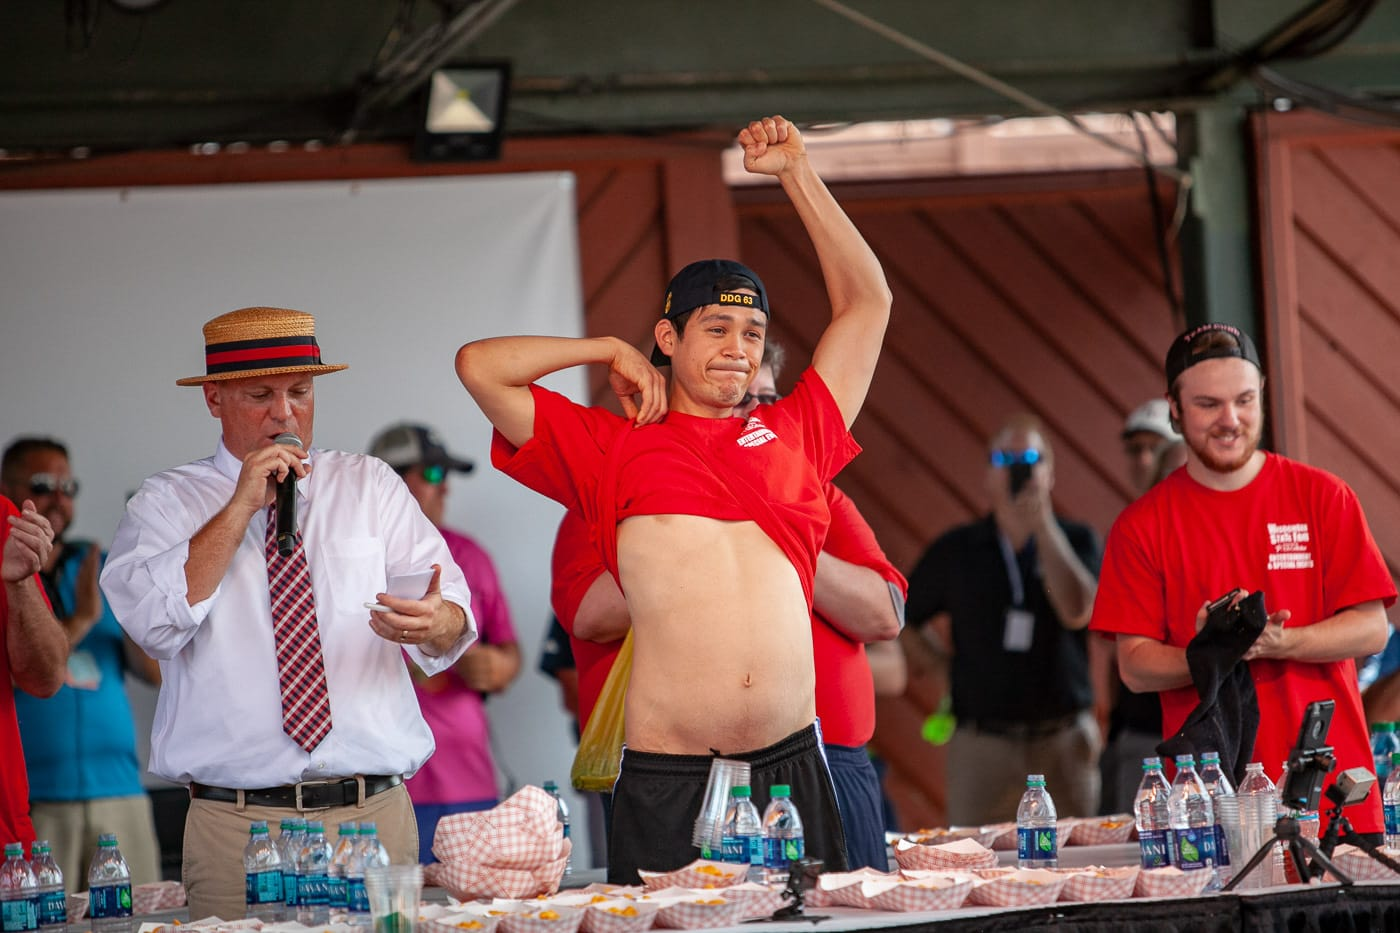 Darron Breeden wins the Wisconsin State Fair World Cheese Curd Eating Championship